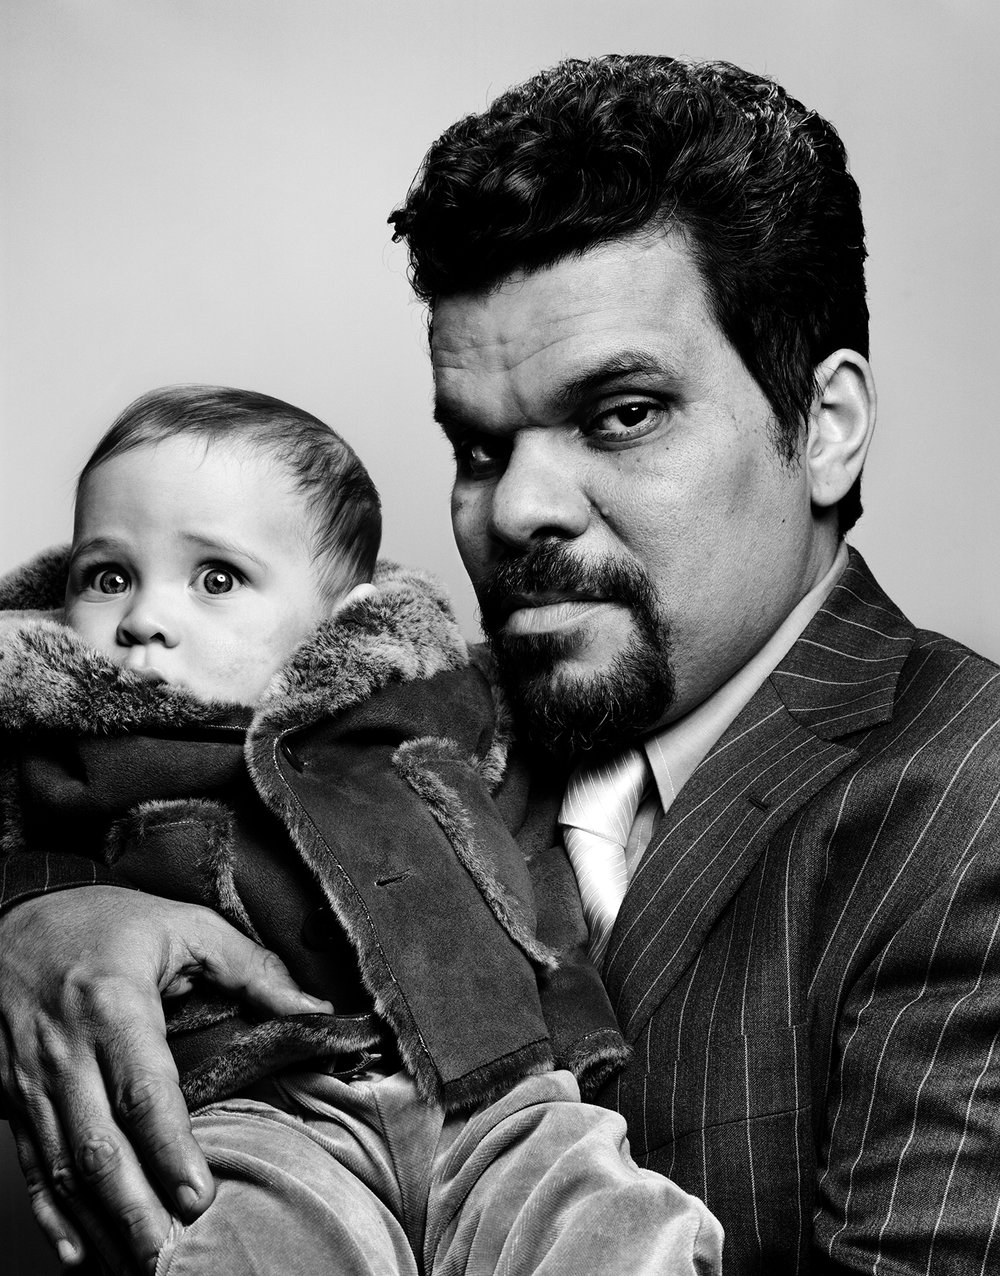 Luis Guzman with Charley - New York City